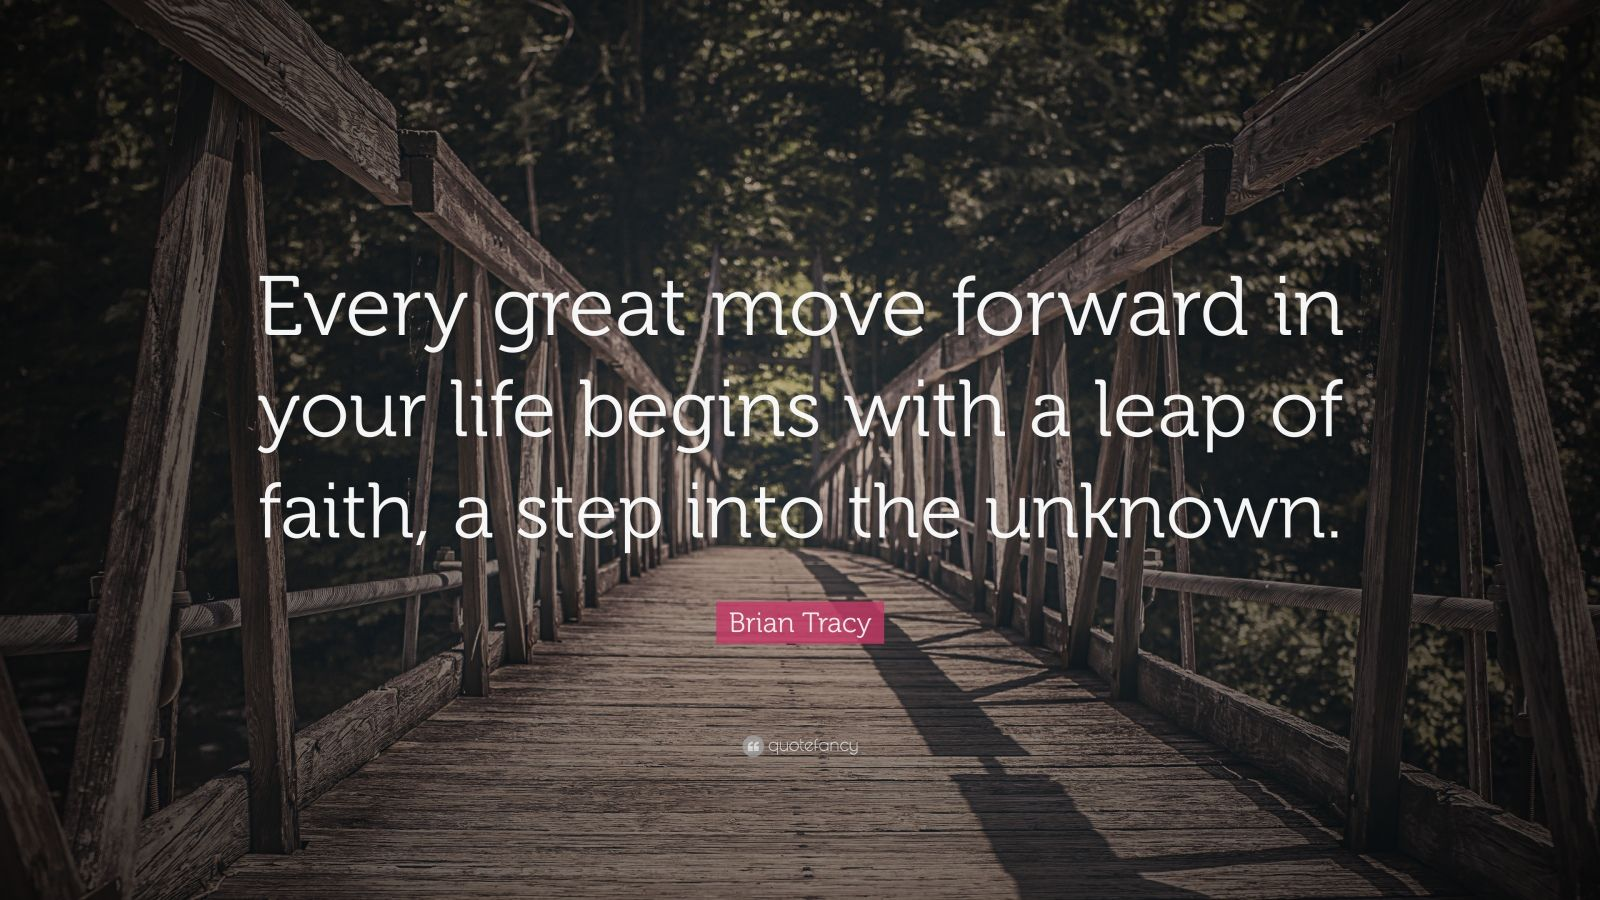 Brian Tracy Quotes Wallpaper Brian Tracy Quote Every Great Move Forward In Your Life